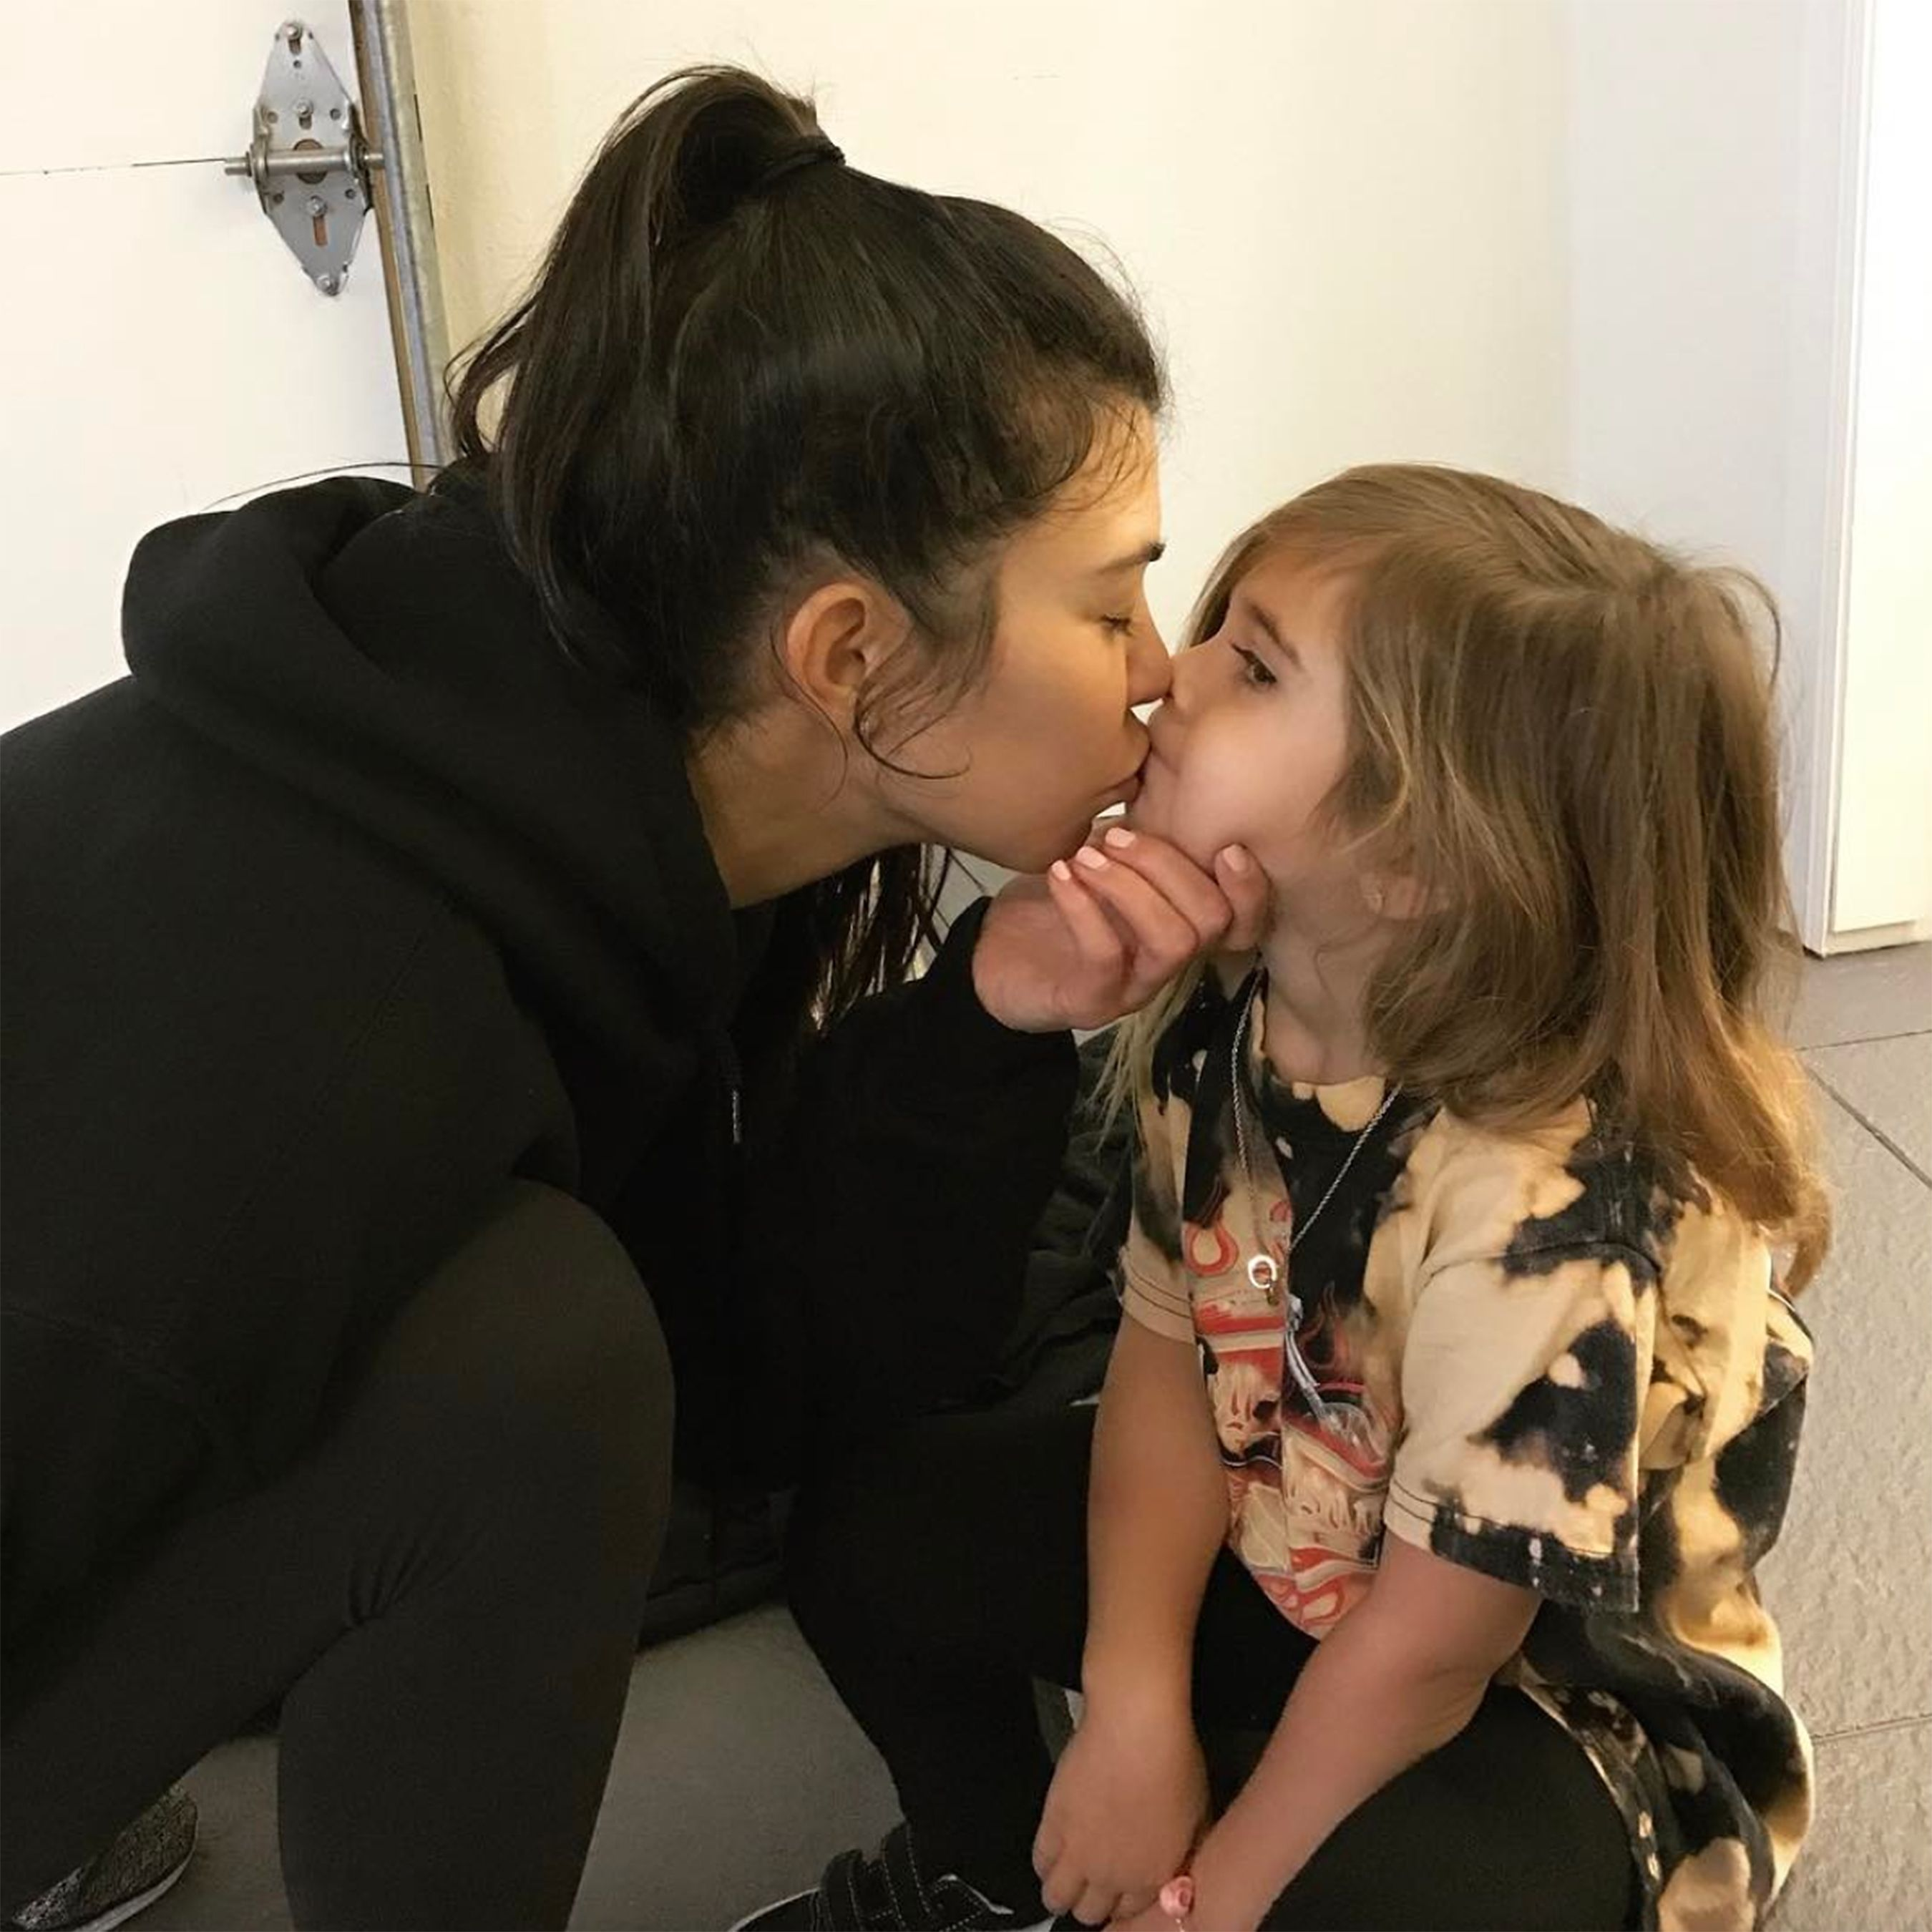 Kourtney Kardashian Lets Daughter Penelope, 6½, Play with Makeup - But Tries to Keep It 'Clean'